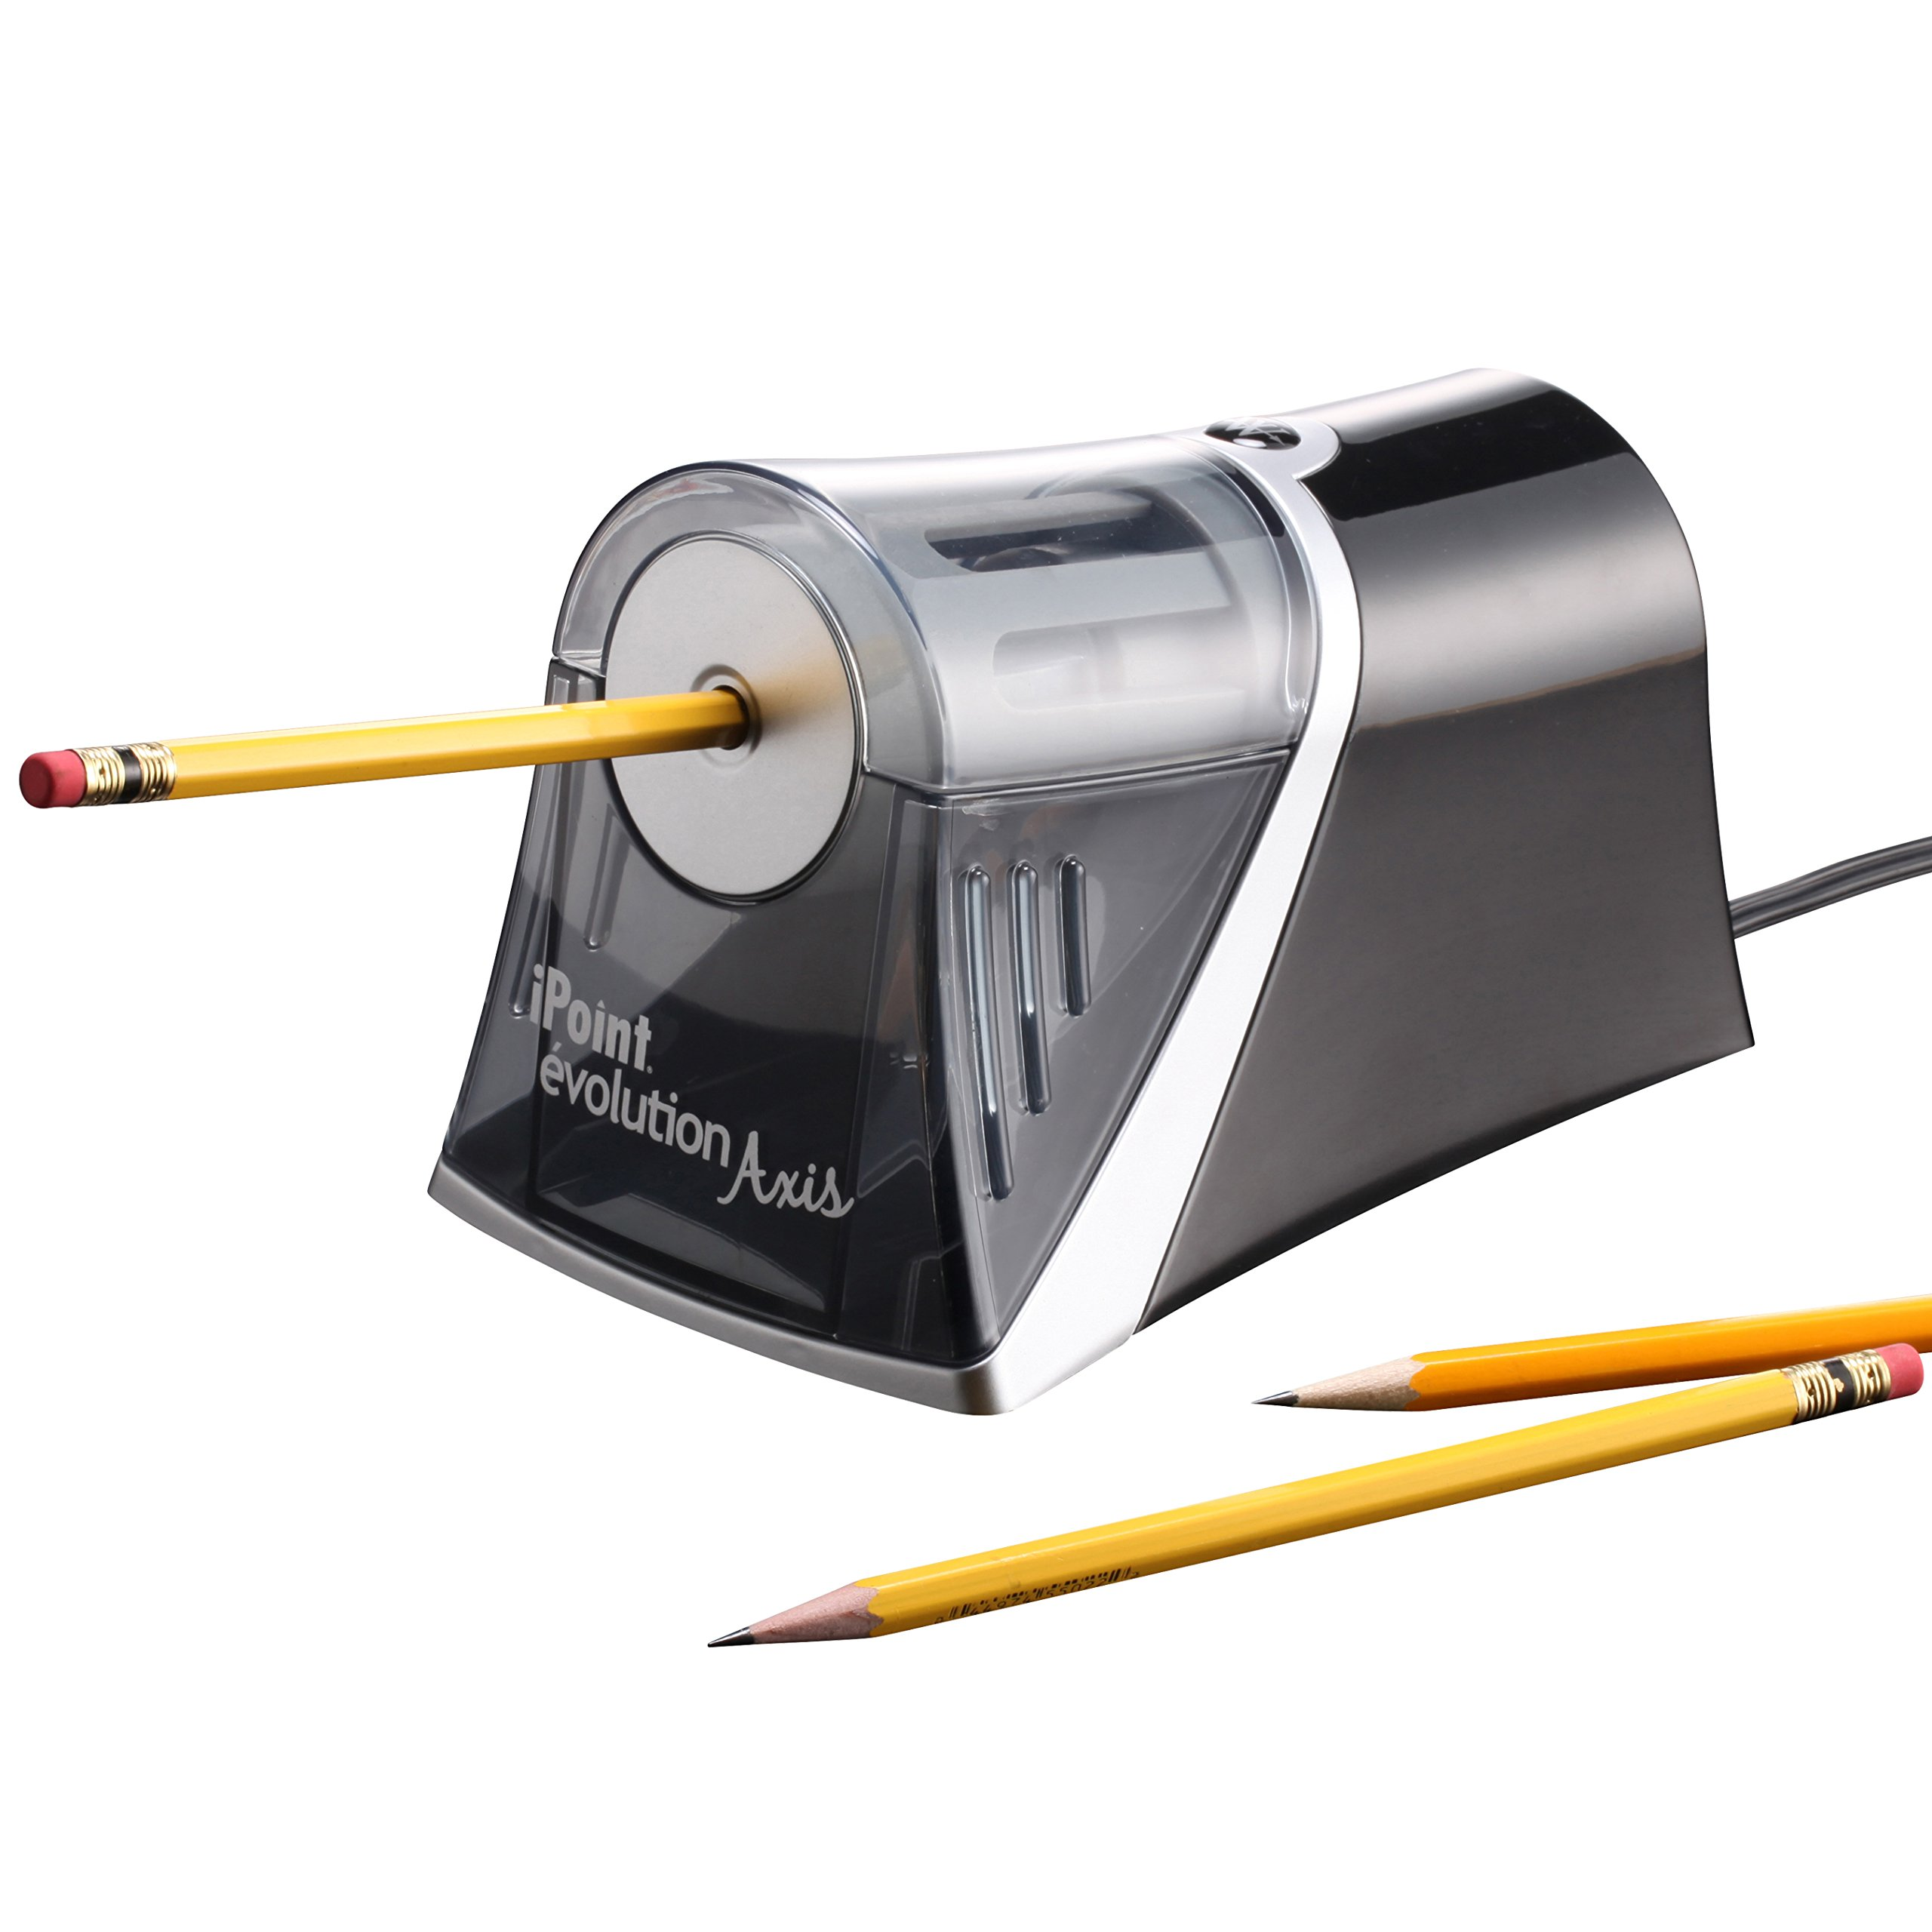 Westcott iPoint Evolution Axis Electric Sharpener by Westcott (Image #3)